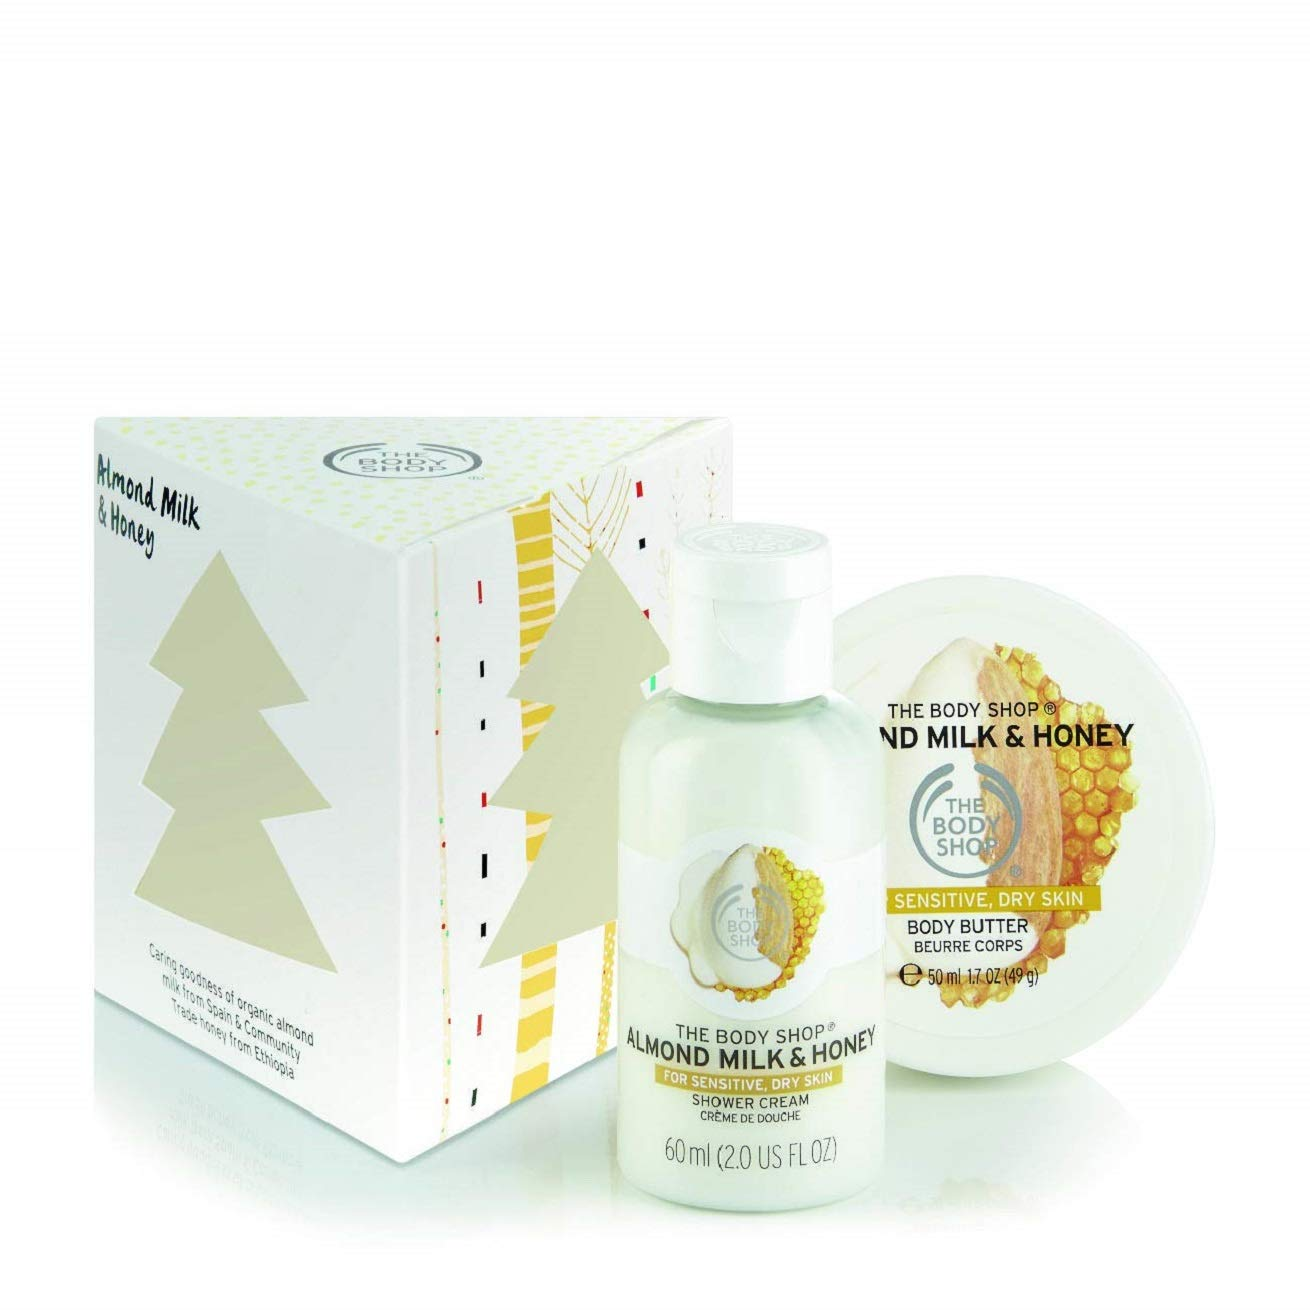 Christmas Gift Sets Body Shop.Details About The Body Shop Almond Milk And Honey Treats Cube Gift Set For Woman Love